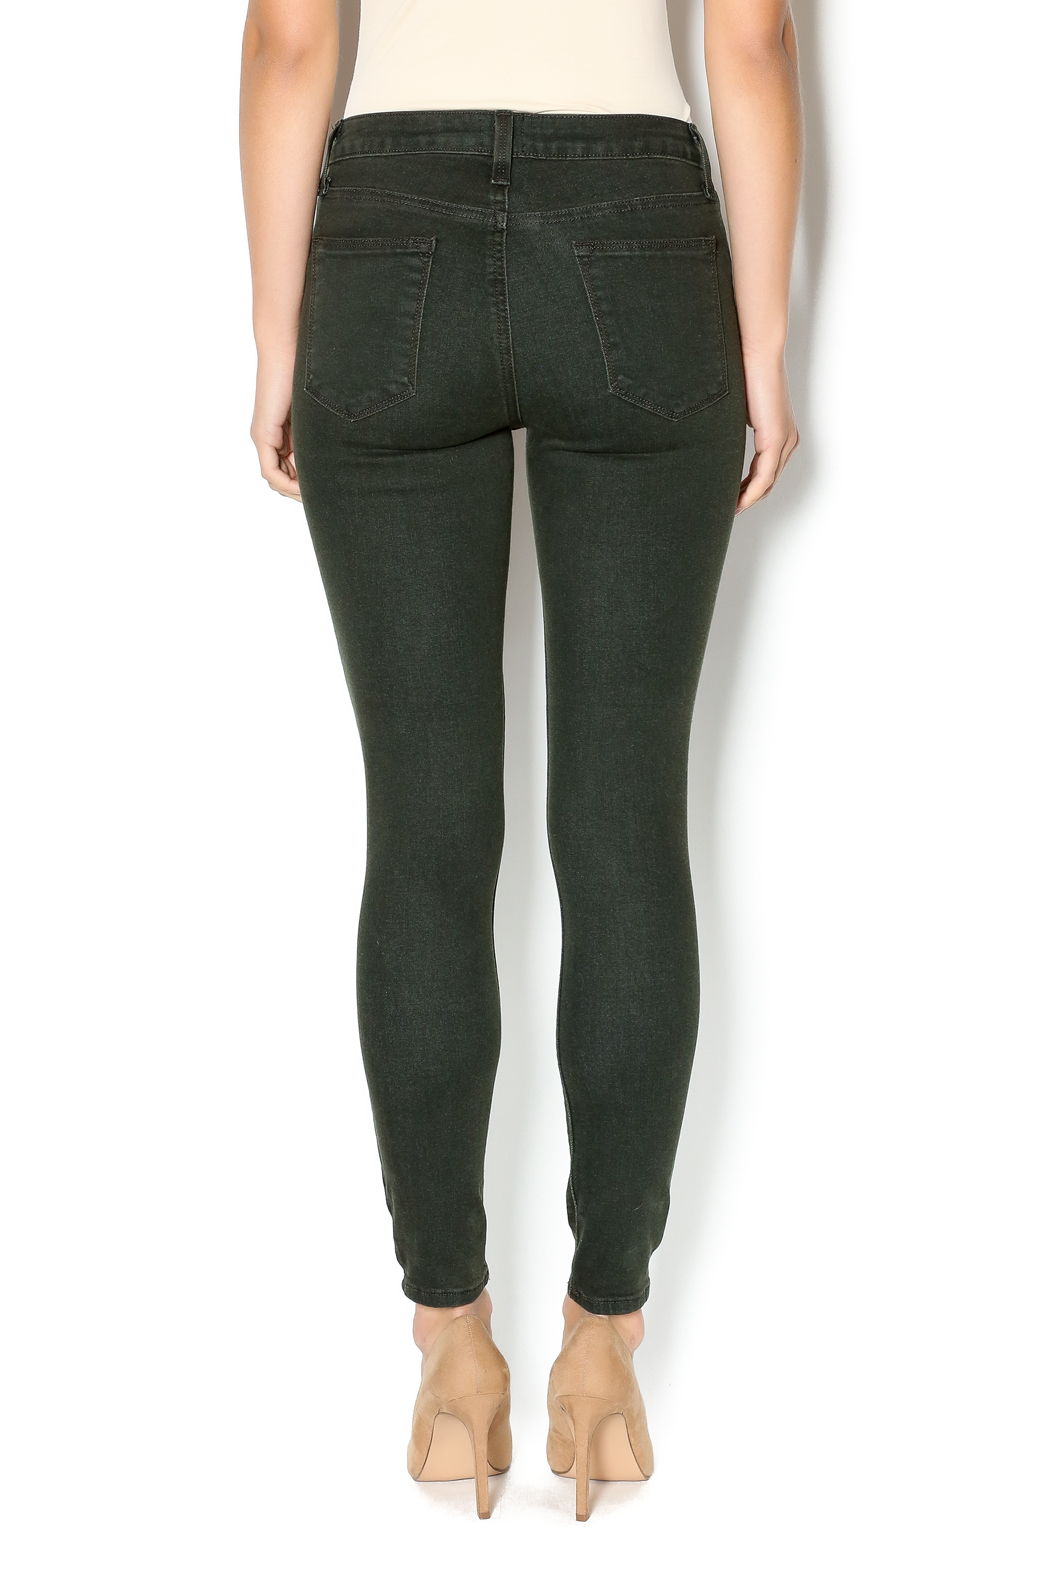 Just Jeans Olive Slit Skinny Jeans From Boston By Hello